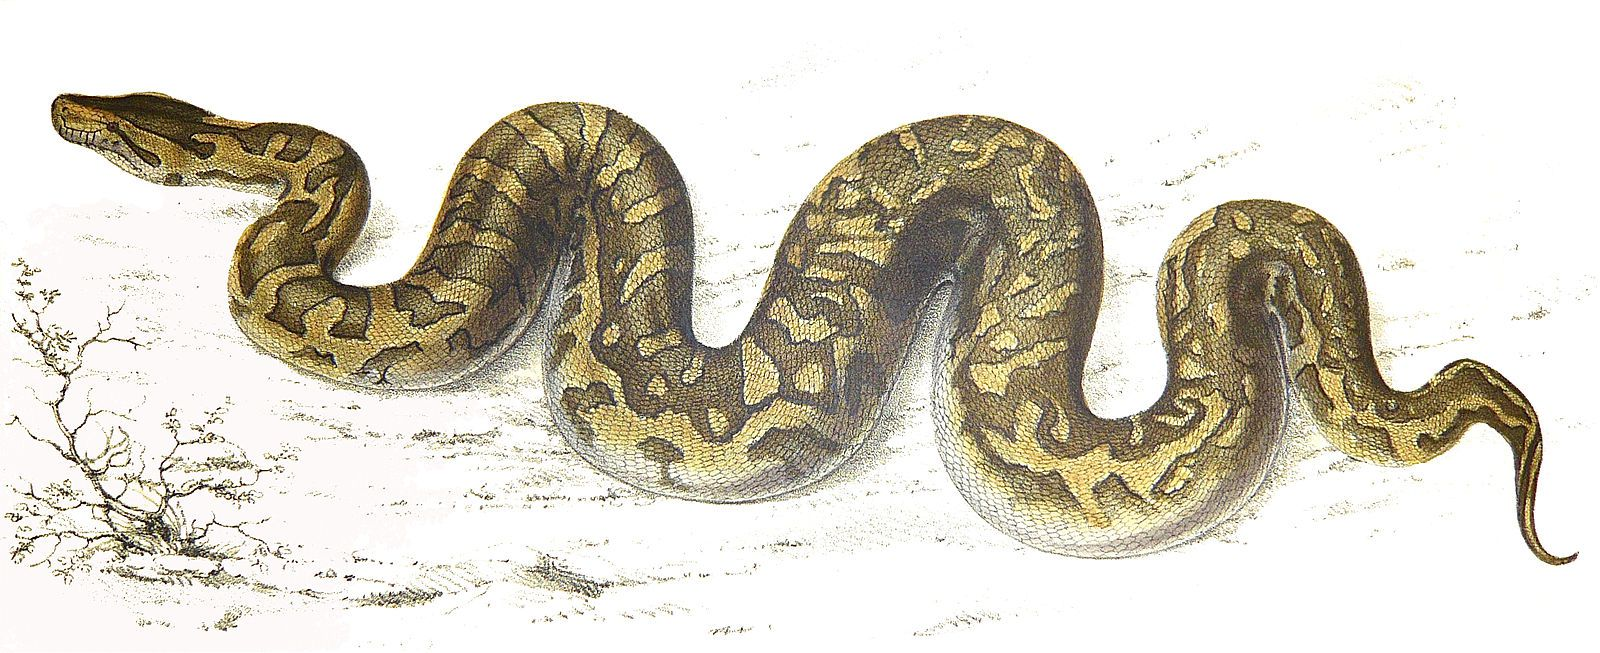 Drawing of a python